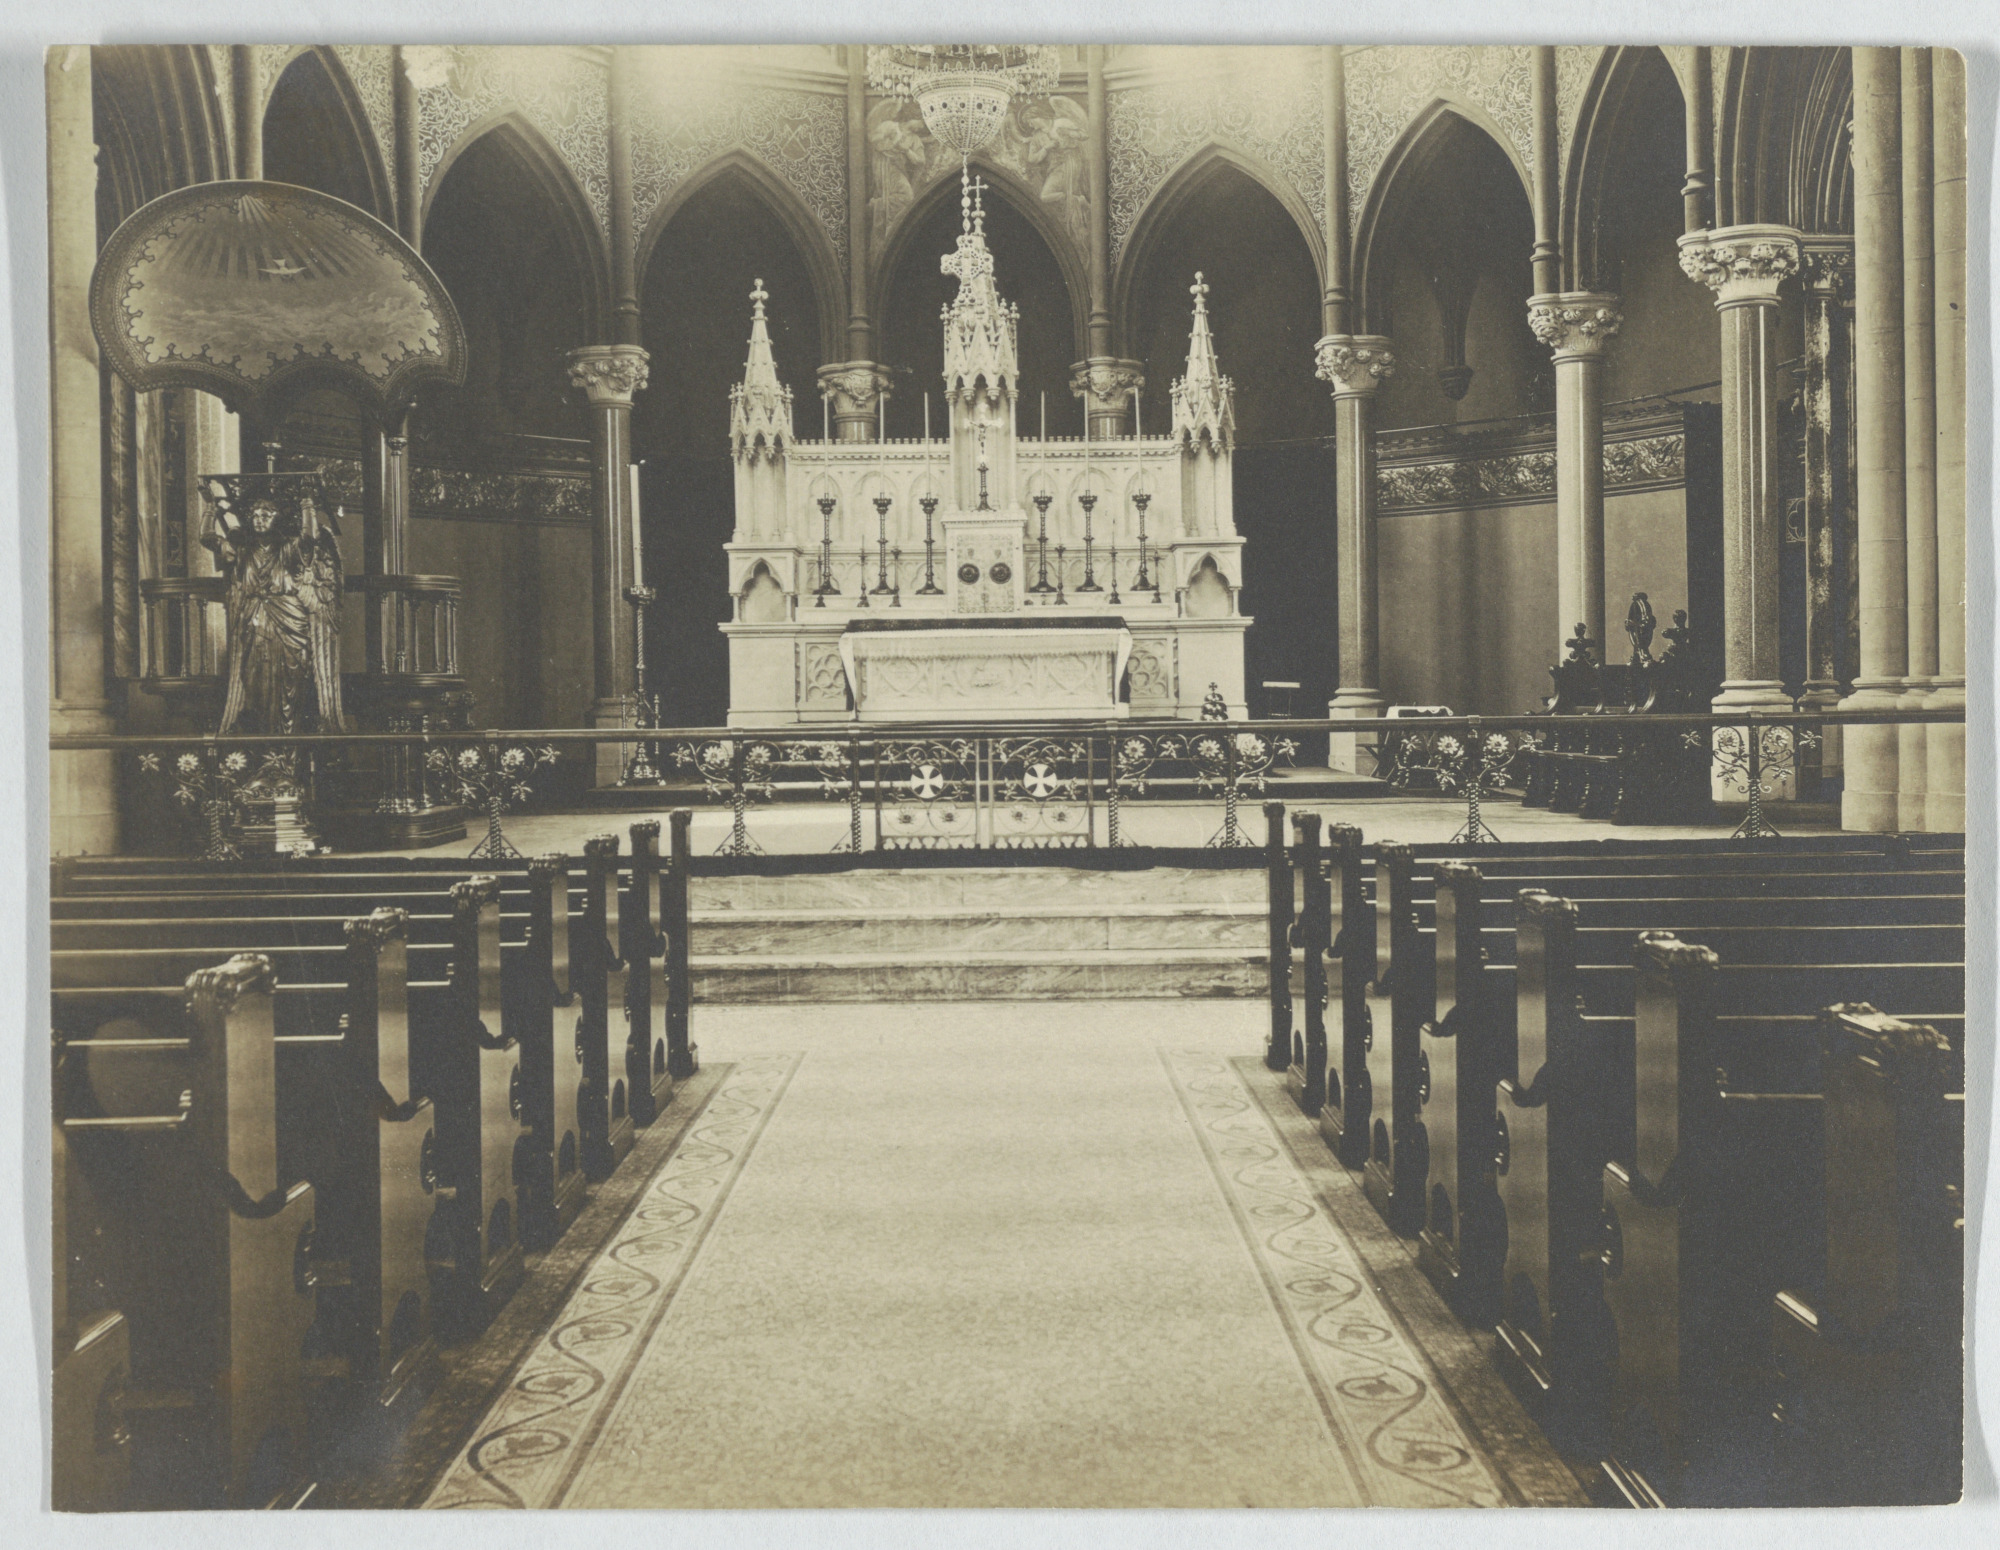 View of the chancel facing the altar of an unidentified church